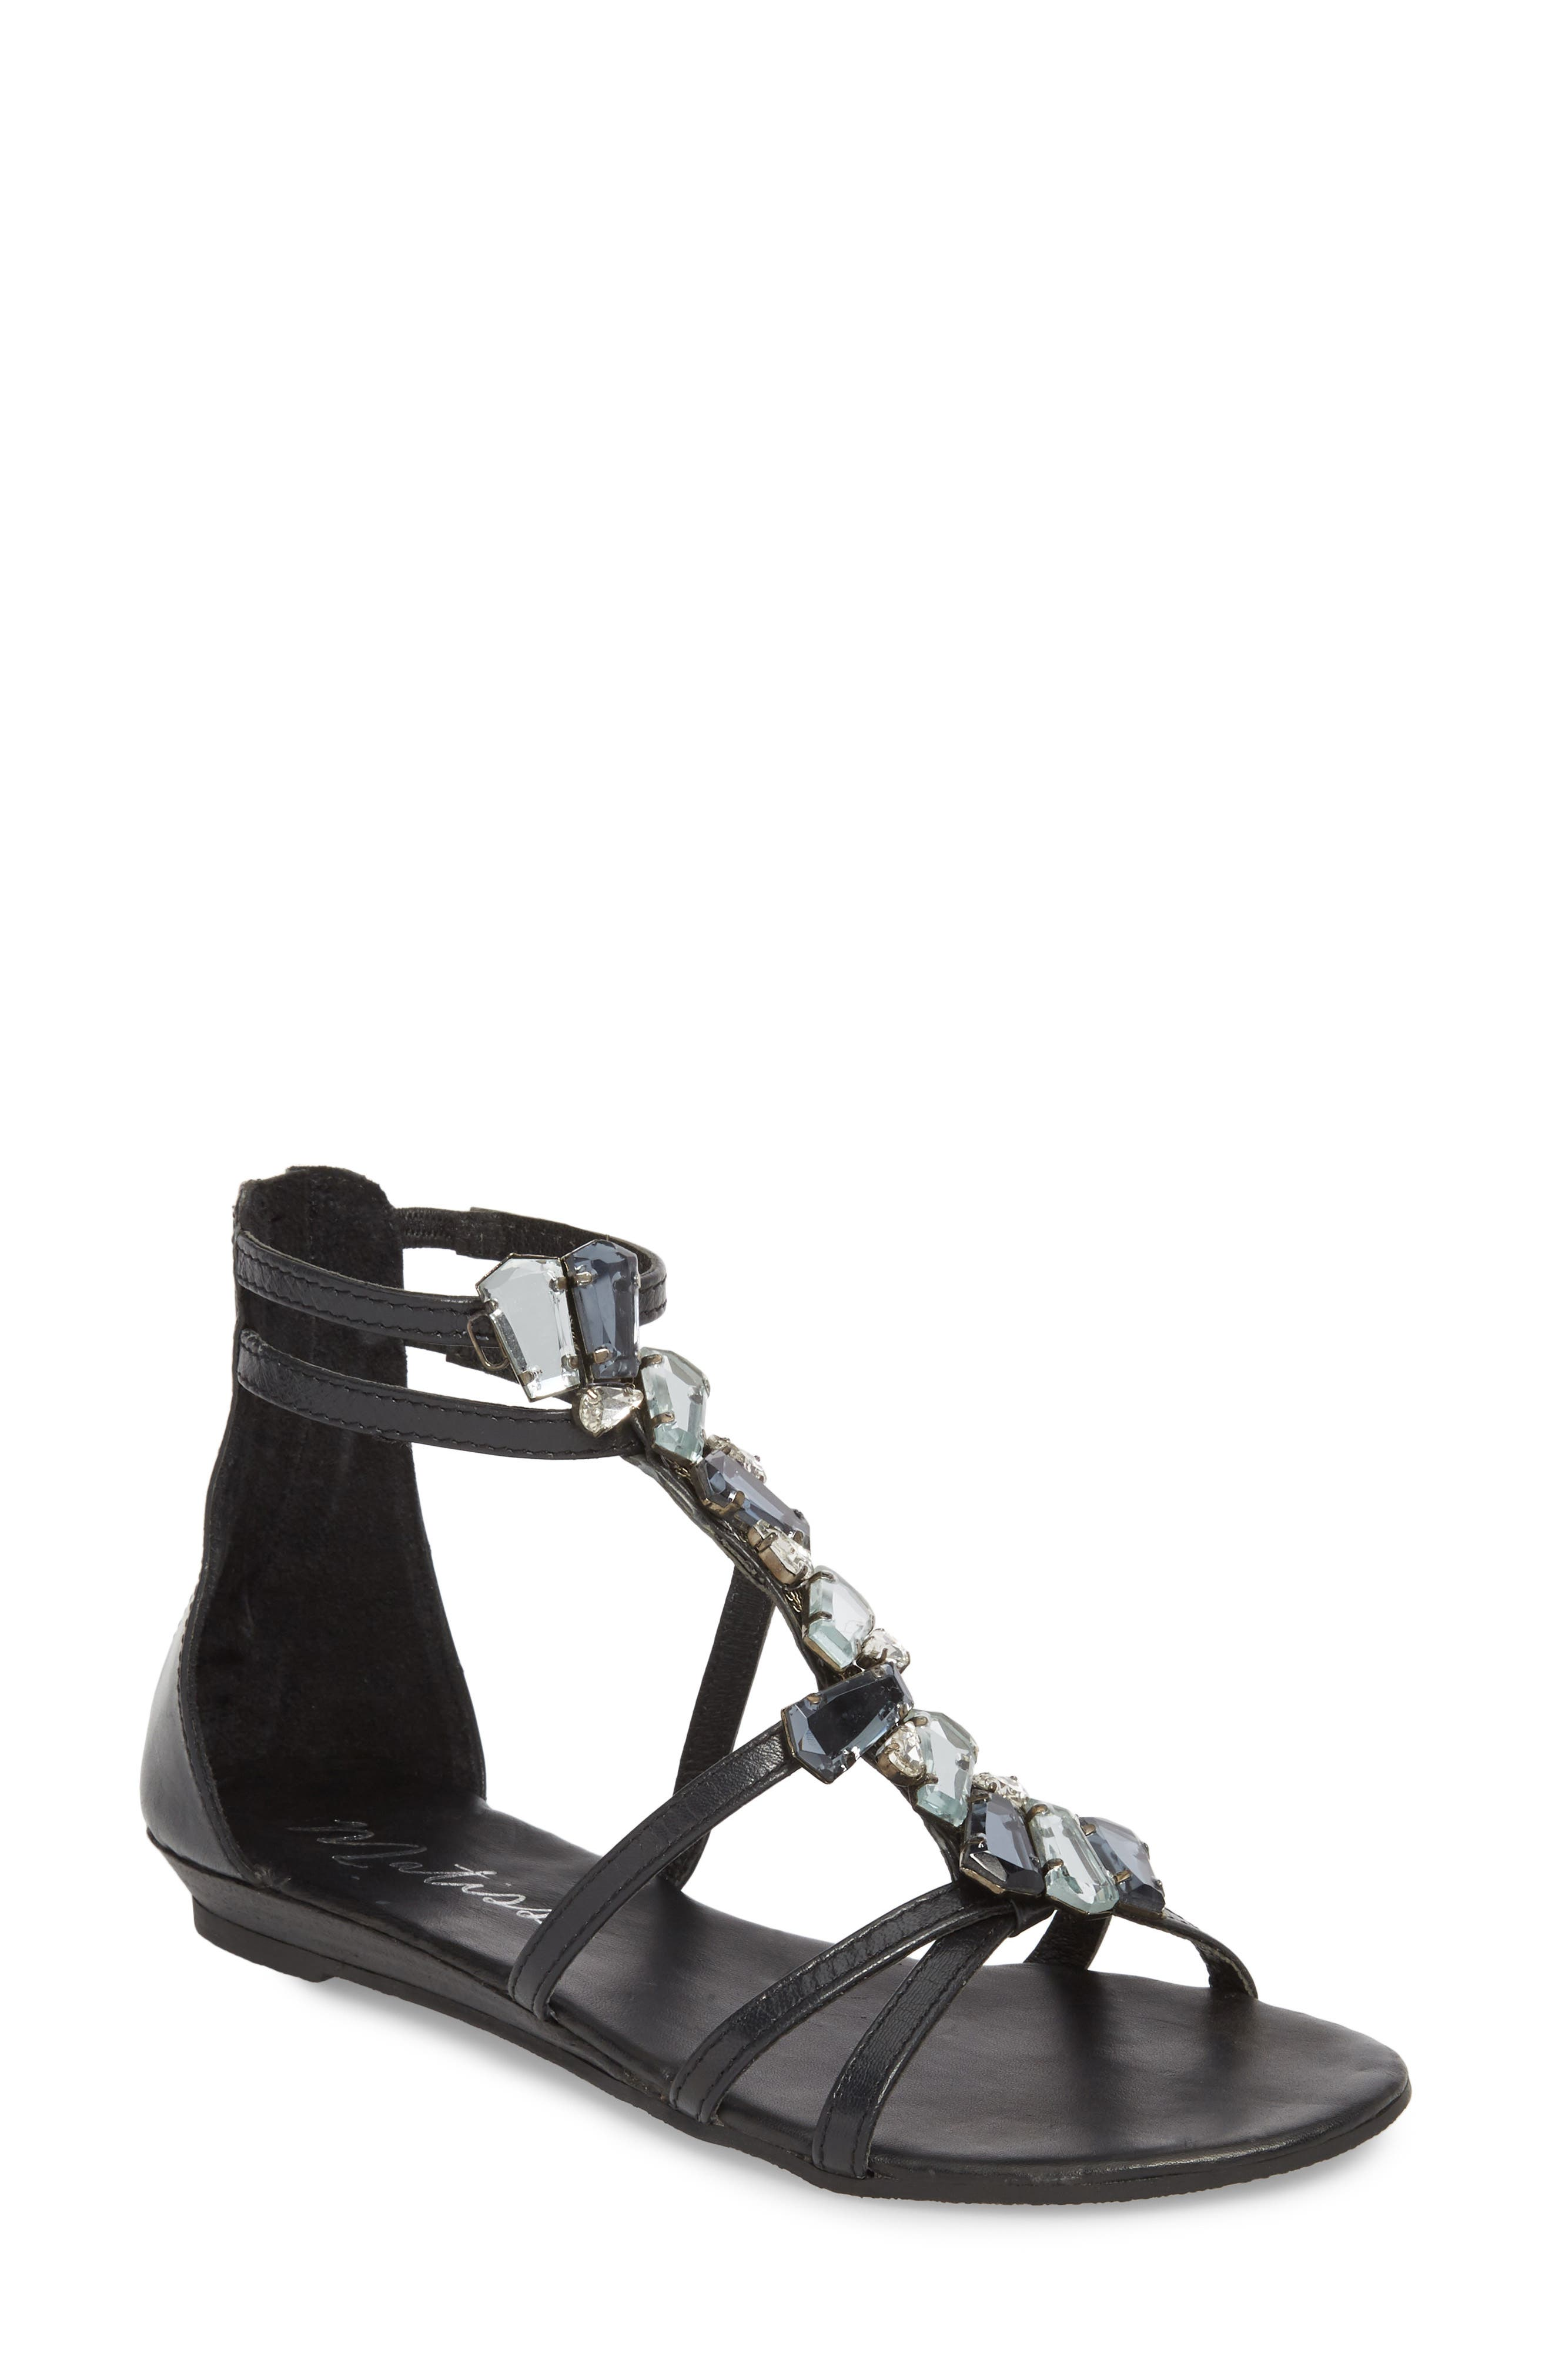 Didi Crystal Embellished Sandal,                         Main,                         color, Black Leather